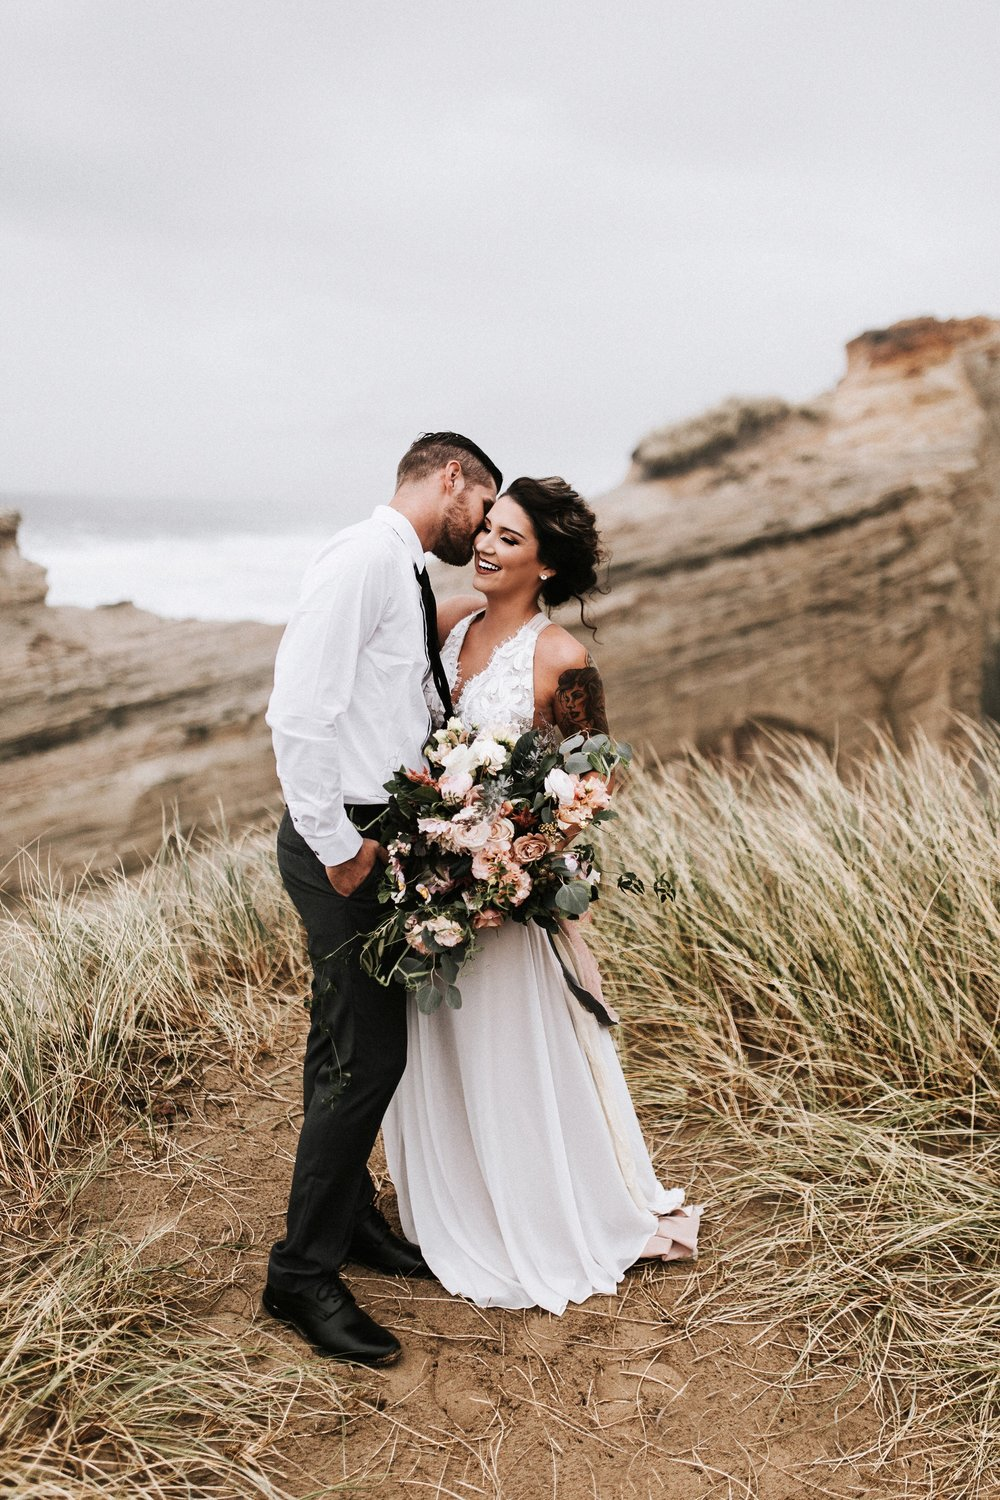 Monique Serra Photography// Elopement